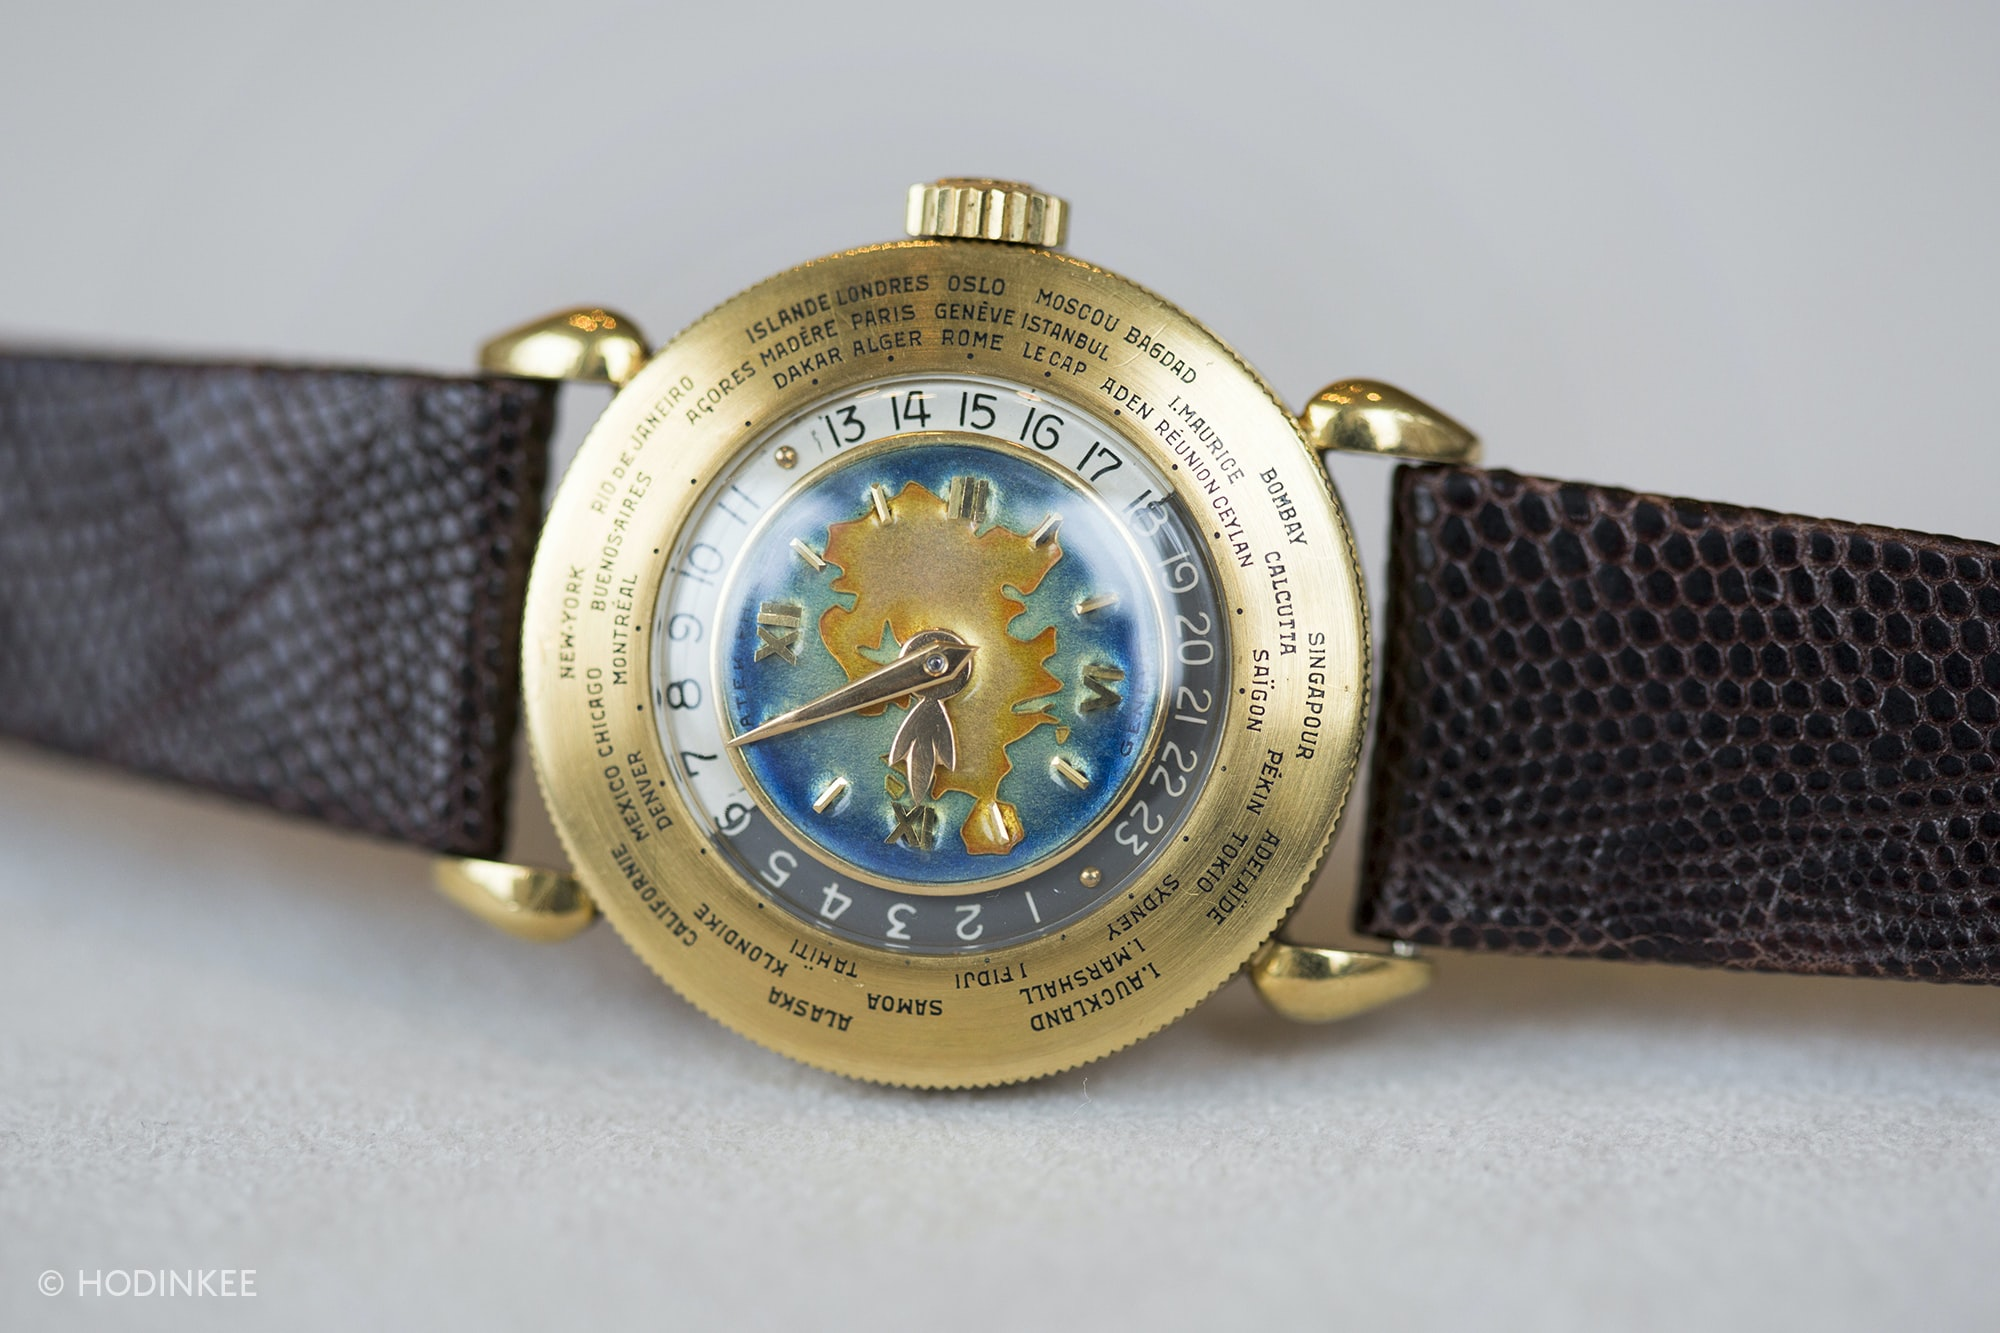 A Patek Philippe Reference 1415 World Timer With Eurasia Enamel Dial, One Of Only Two Known, Coming Up At Sotheby's A Patek Philippe Reference 1415 World Timer With Eurasia Enamel Dial, One Of Only Two Known, Coming Up At Sotheby's 20010111 copy